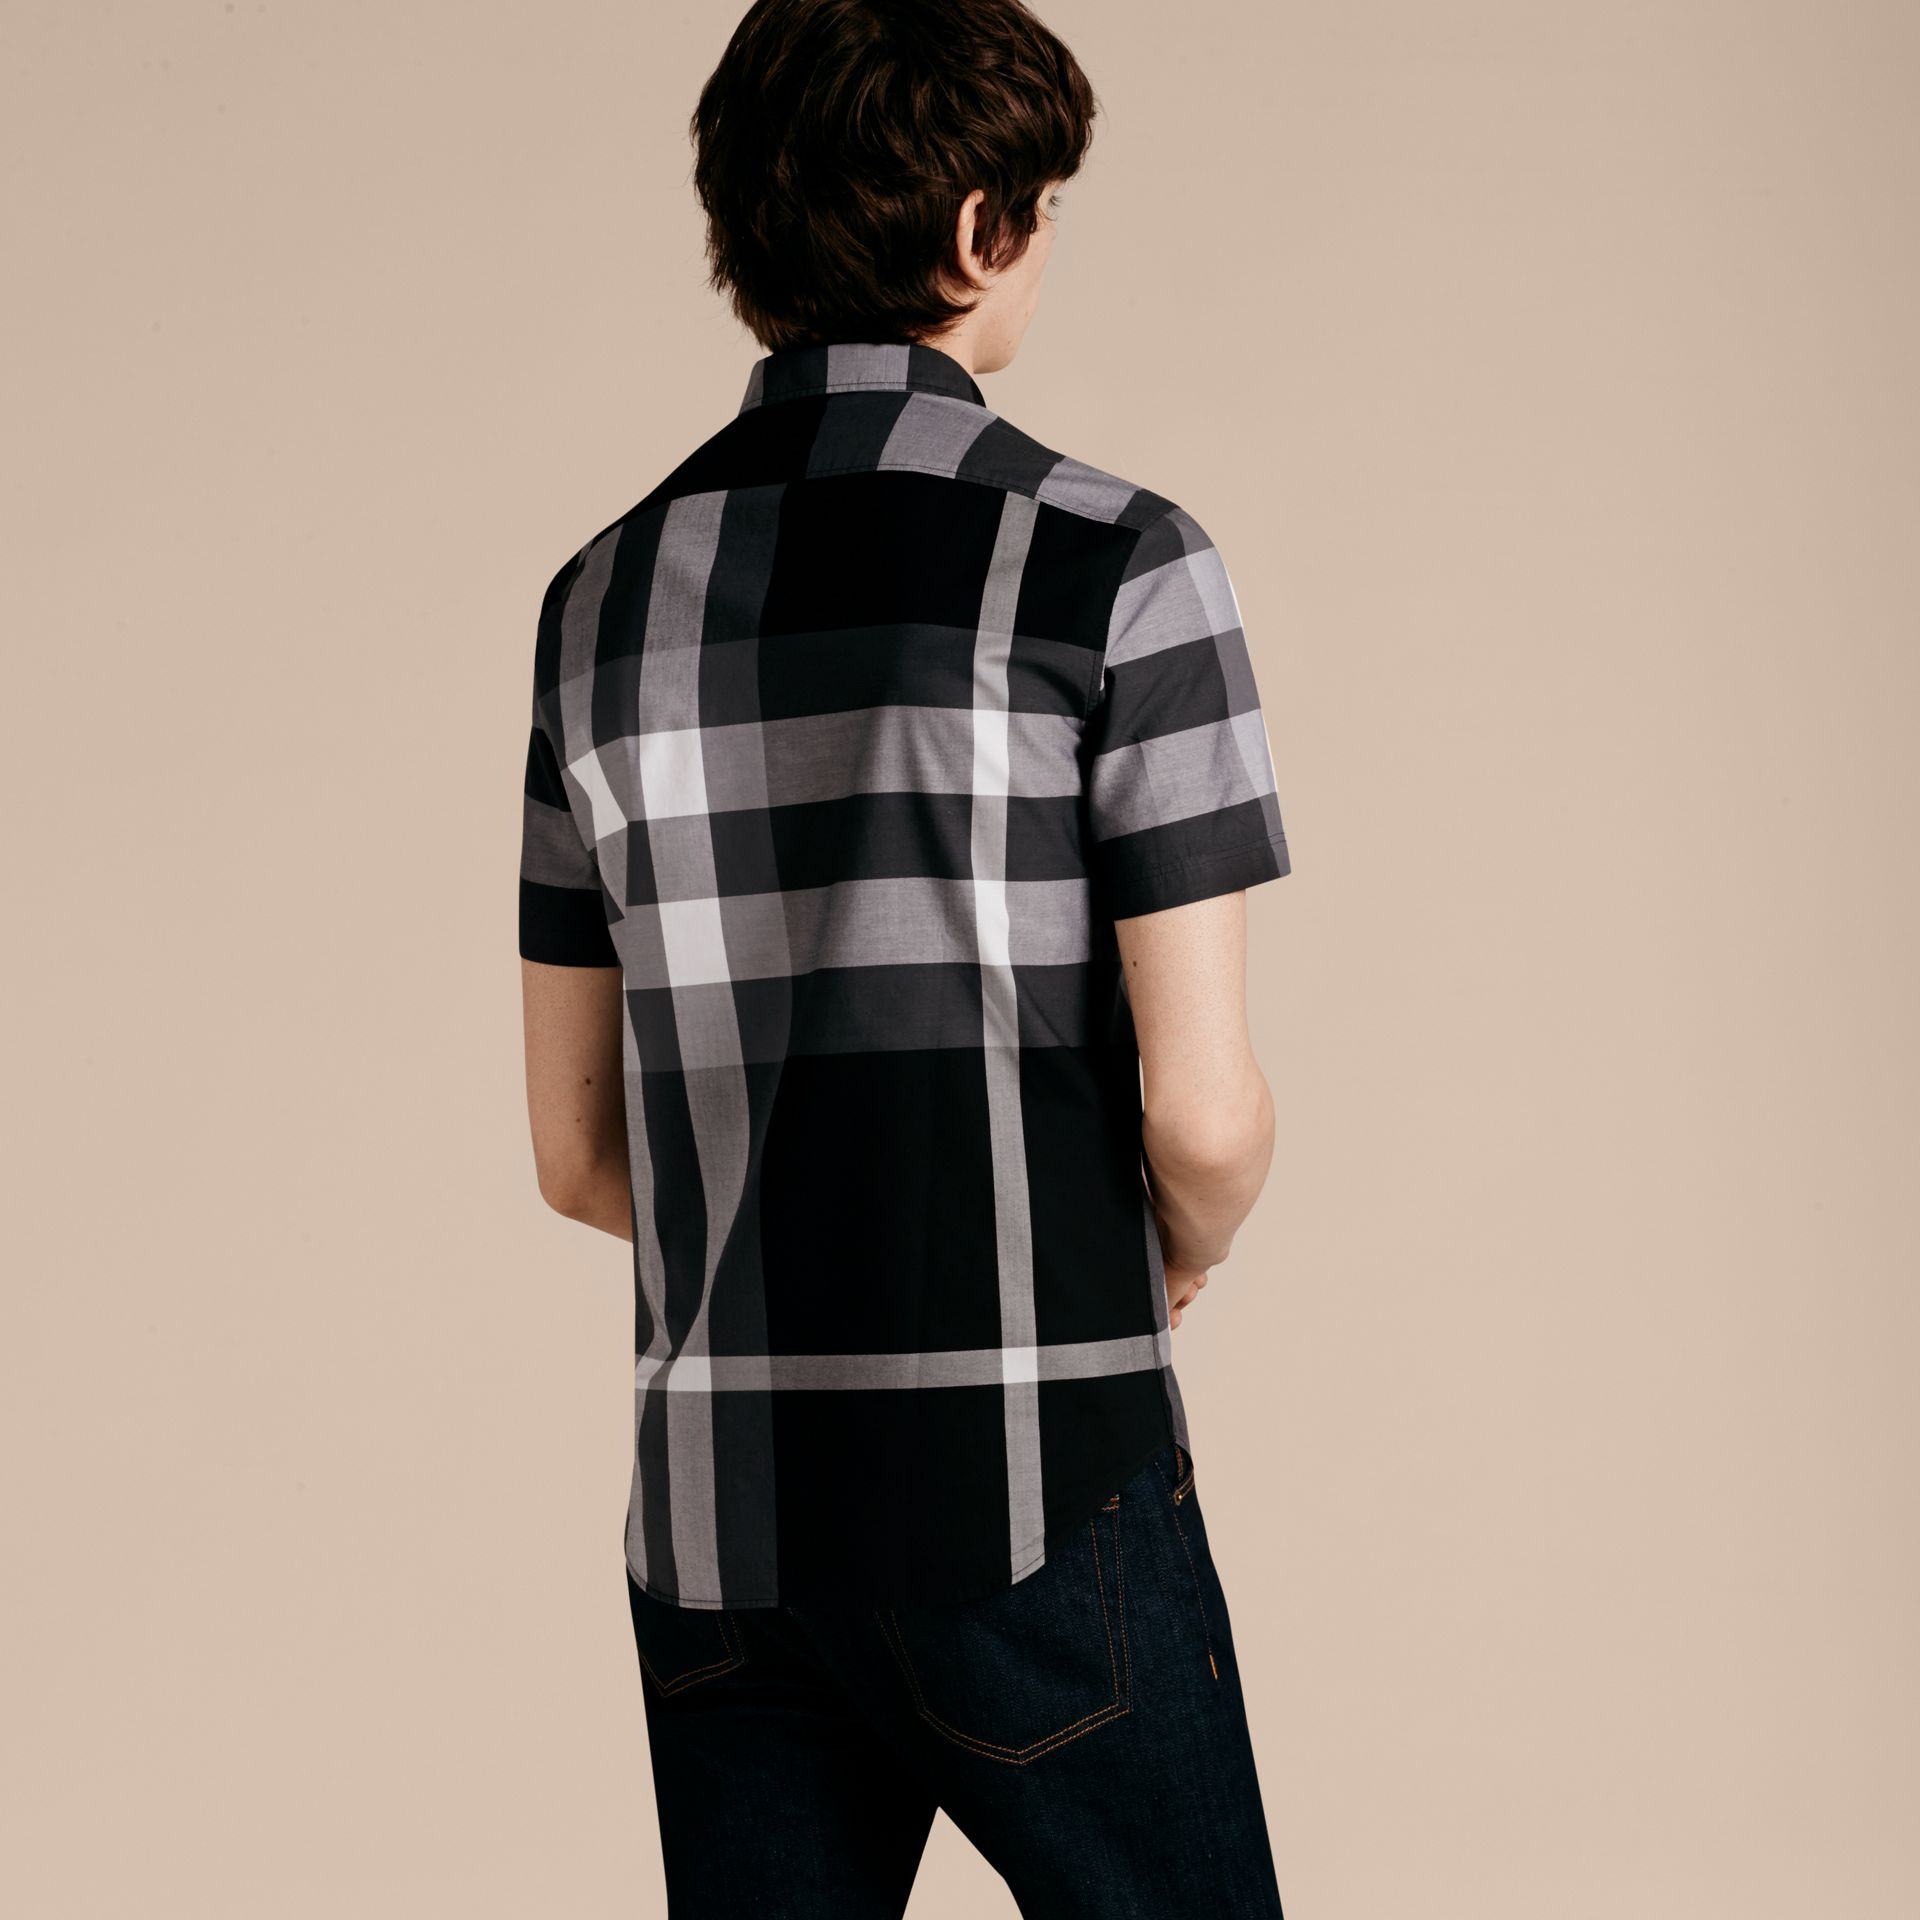 Black Short-sleeved Check Cotton Shirt Black - gallery image 3